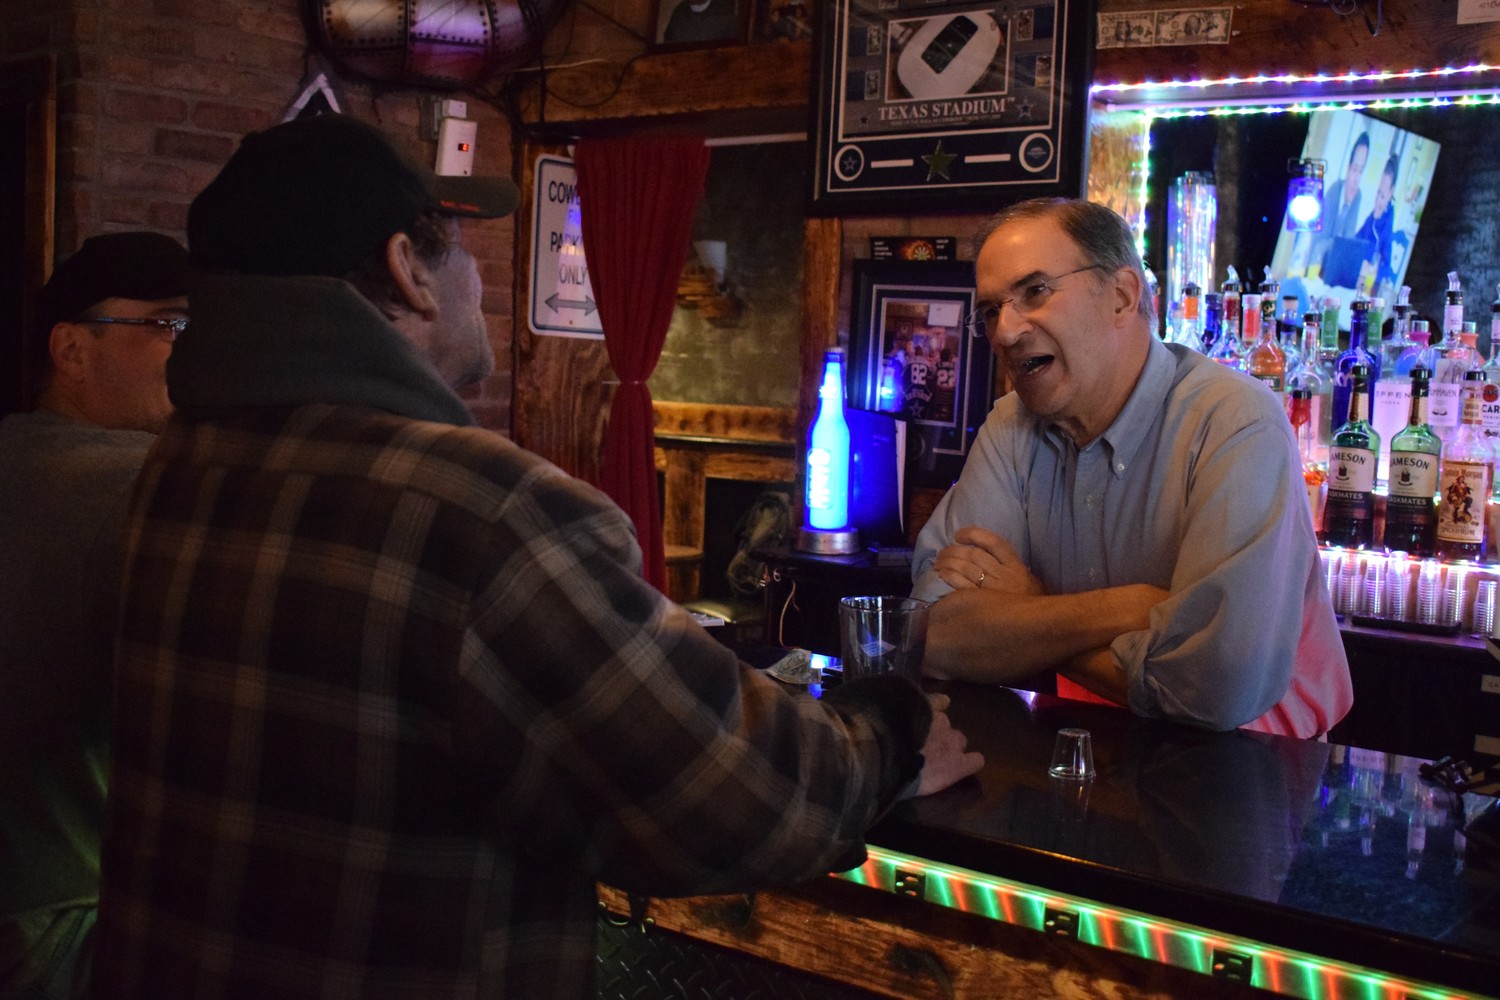 Nassau County Legislator and Franklin Square-based Attorney Vincent Muscarella served as a special guest bartender for the night.